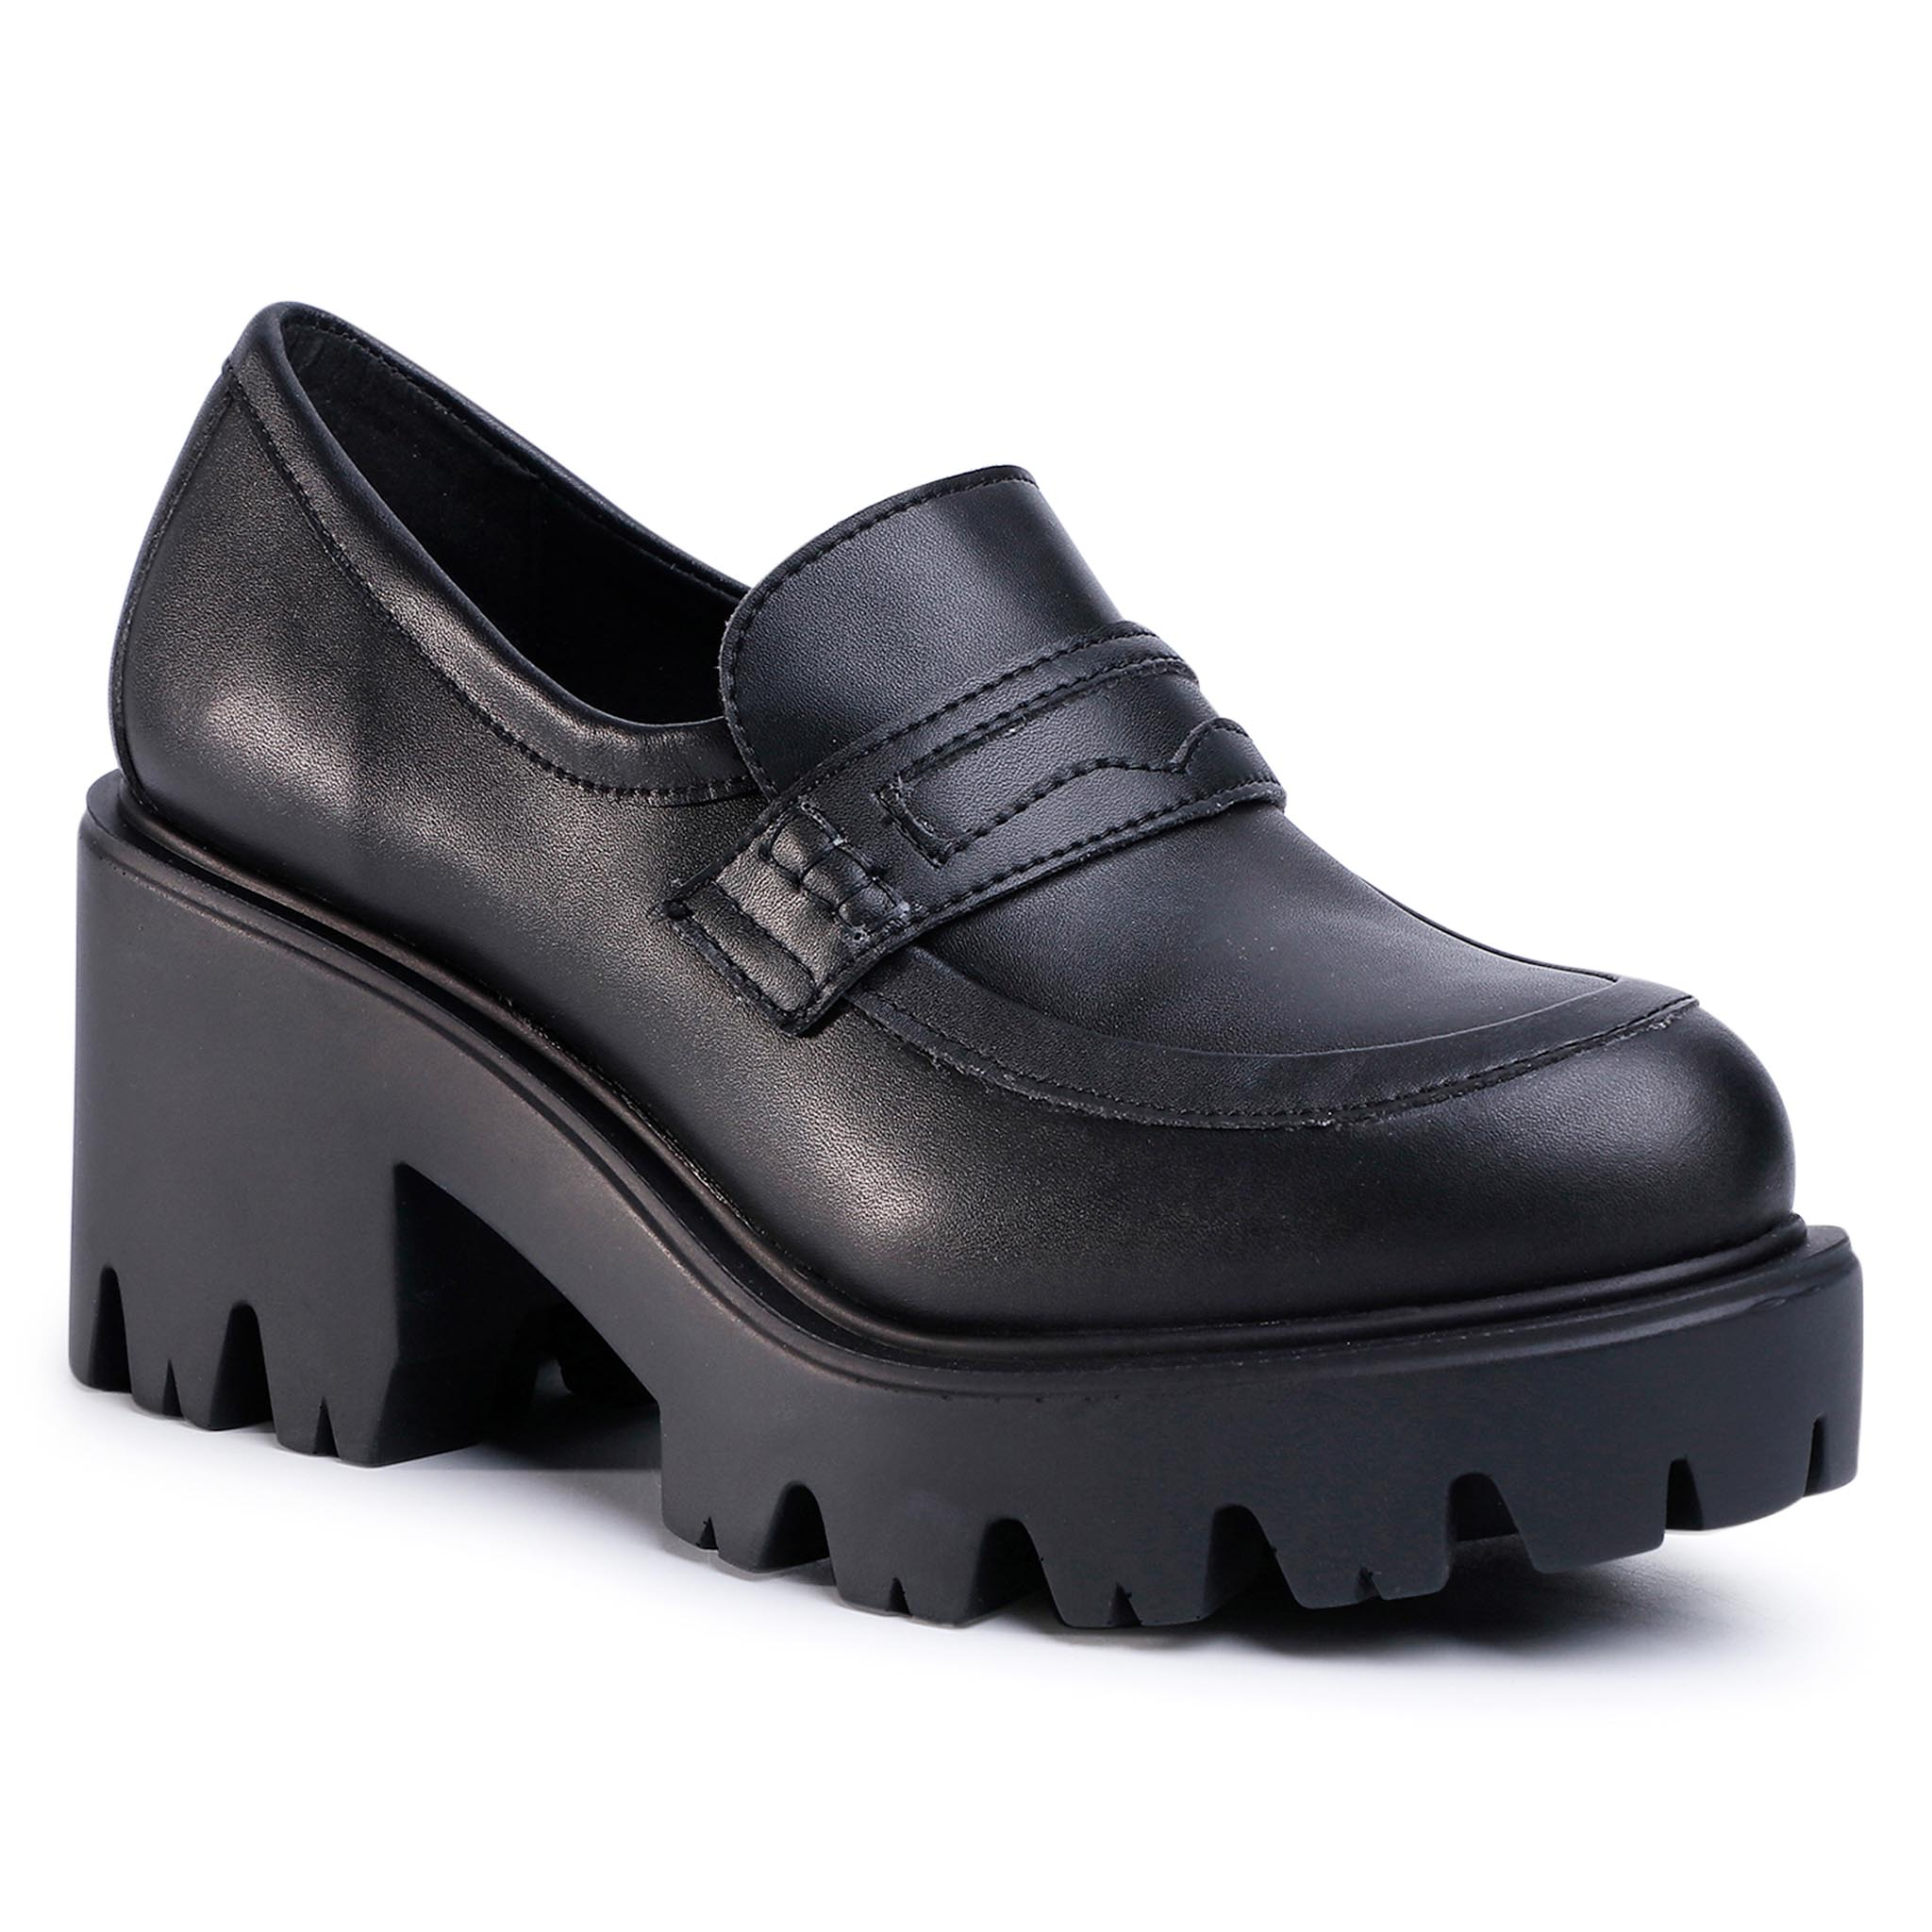 Image of Halbschuhe ALTERCORE - Chanka Vegan Black